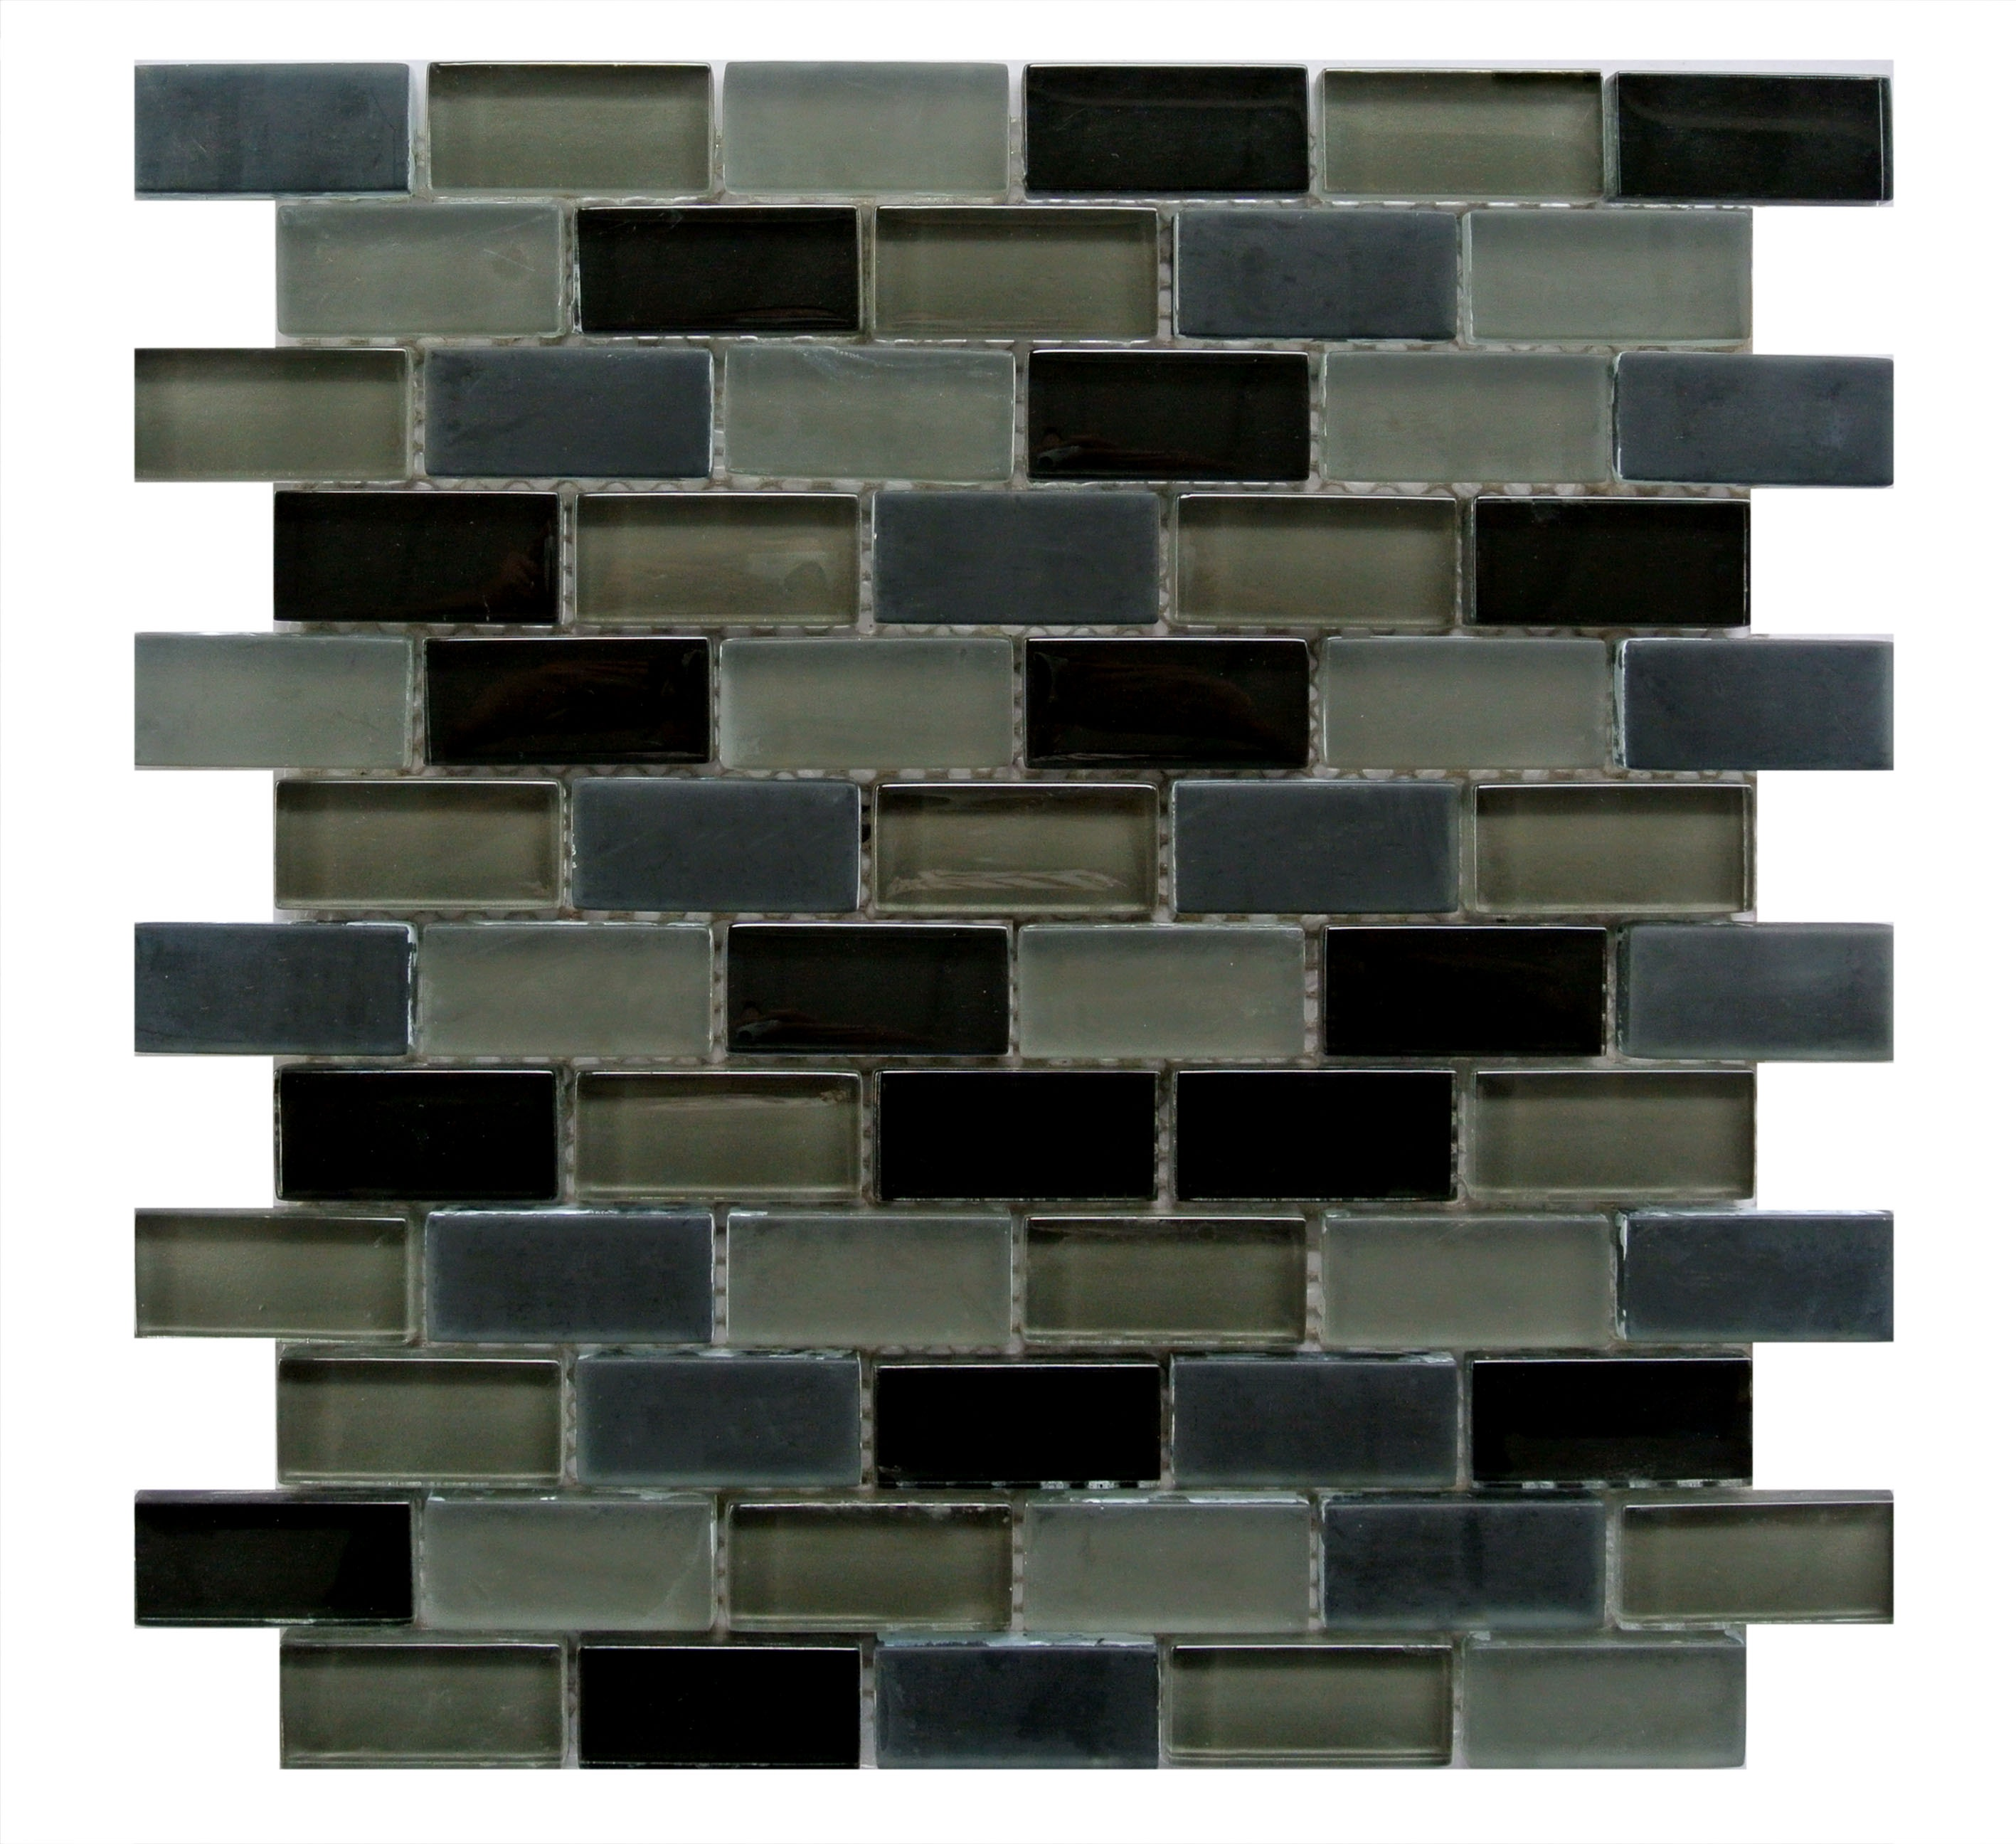 "Free Flow 1"" x 2"" Multi Finish Black Glass Brick Backsplash Mosaic Wall & Floor Tile"